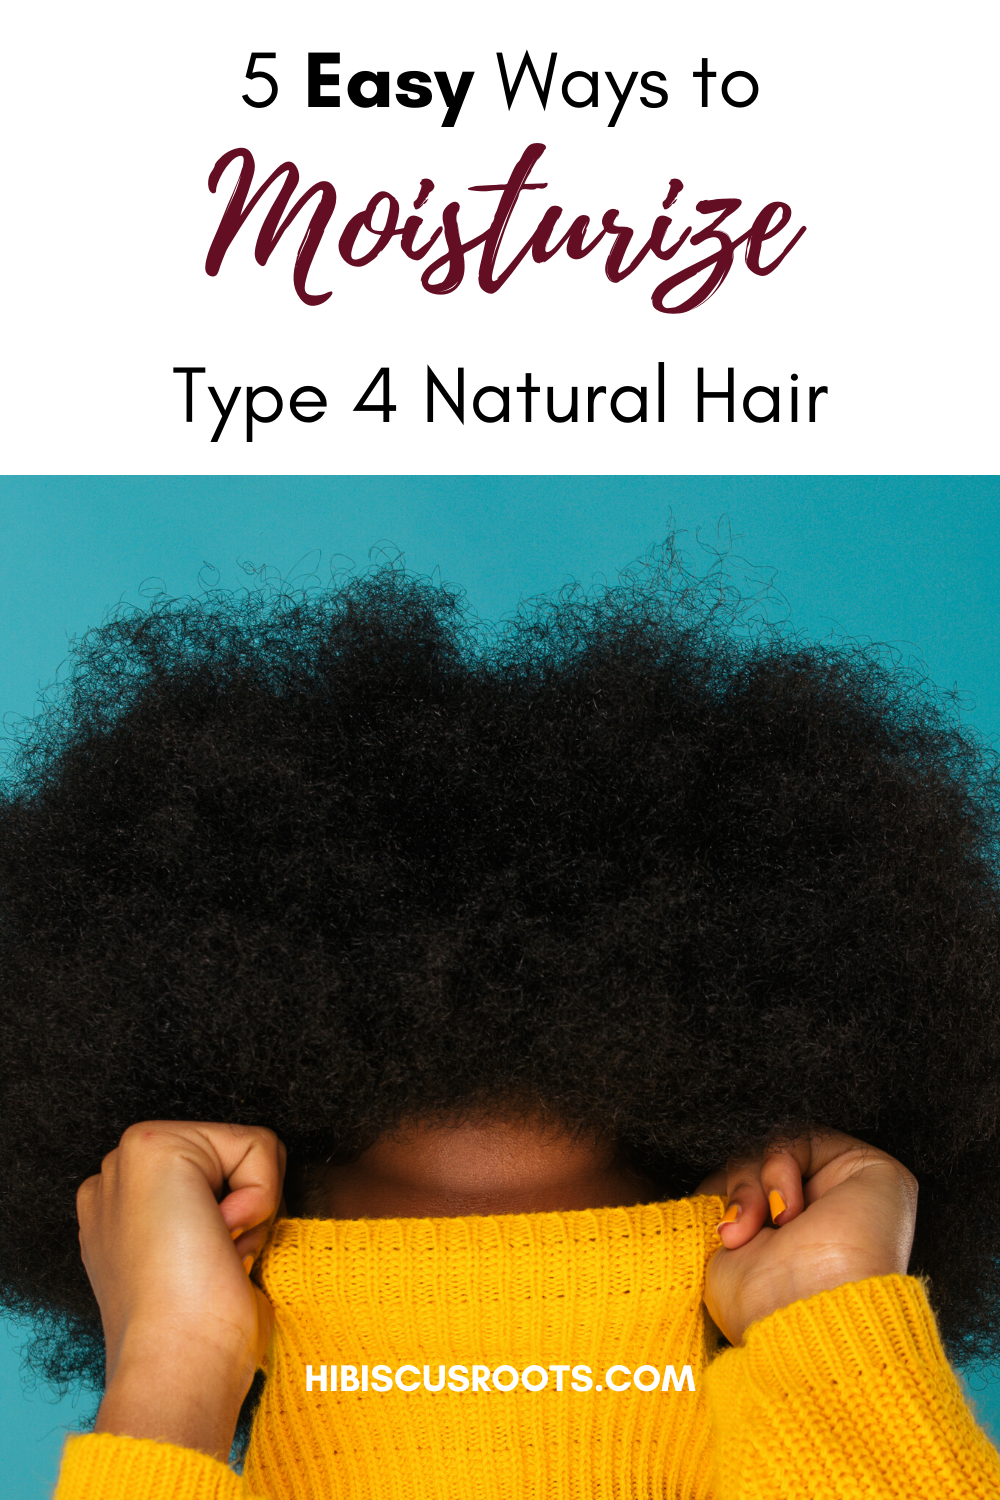 8 Ways to Moisturize Natural Hair that Never STAYS Moisturized!